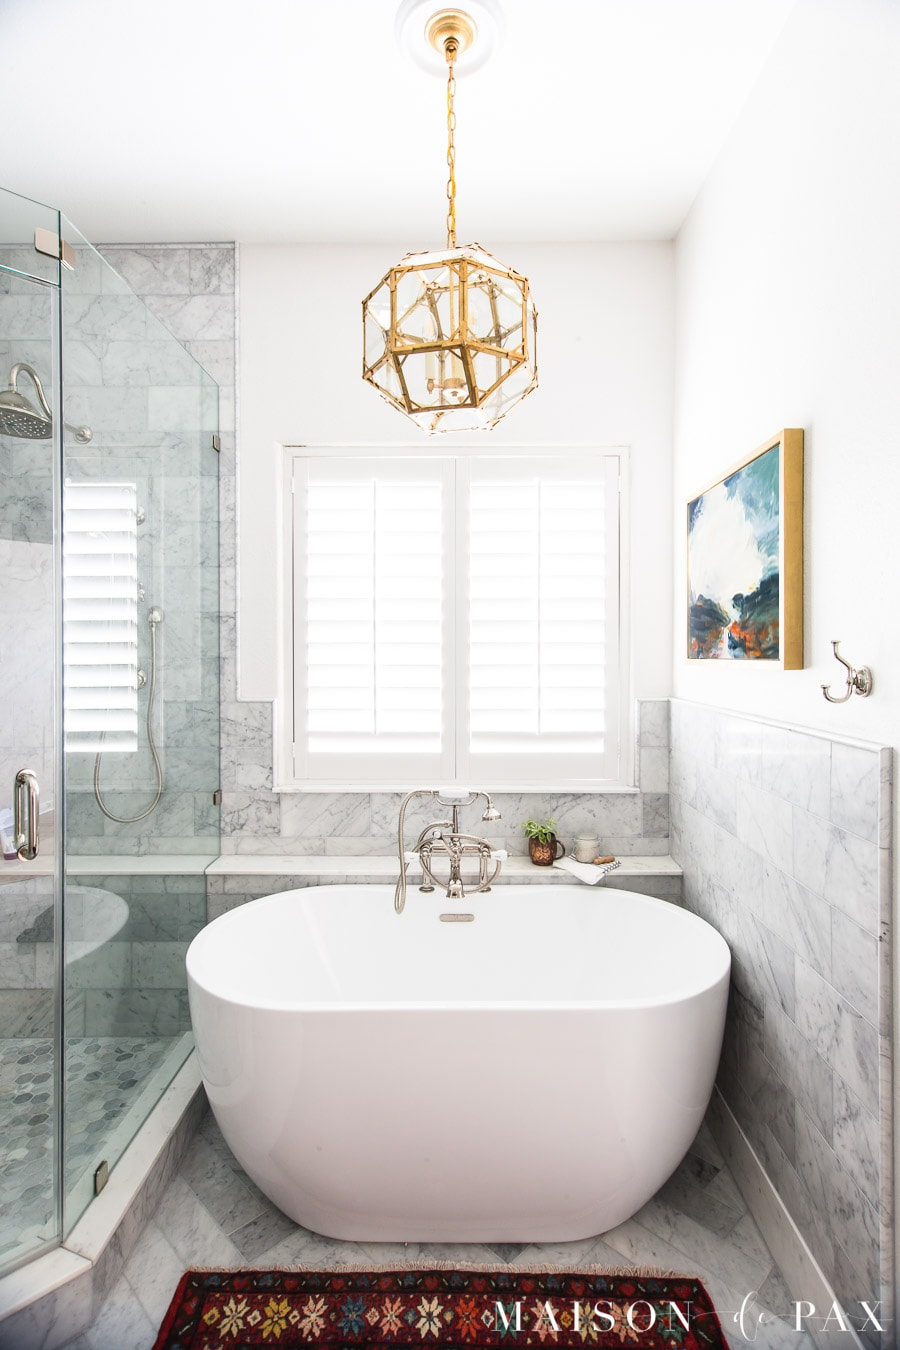 freestanding tub in marble bathroom with vintage rug and abstract art   Maison de Pax